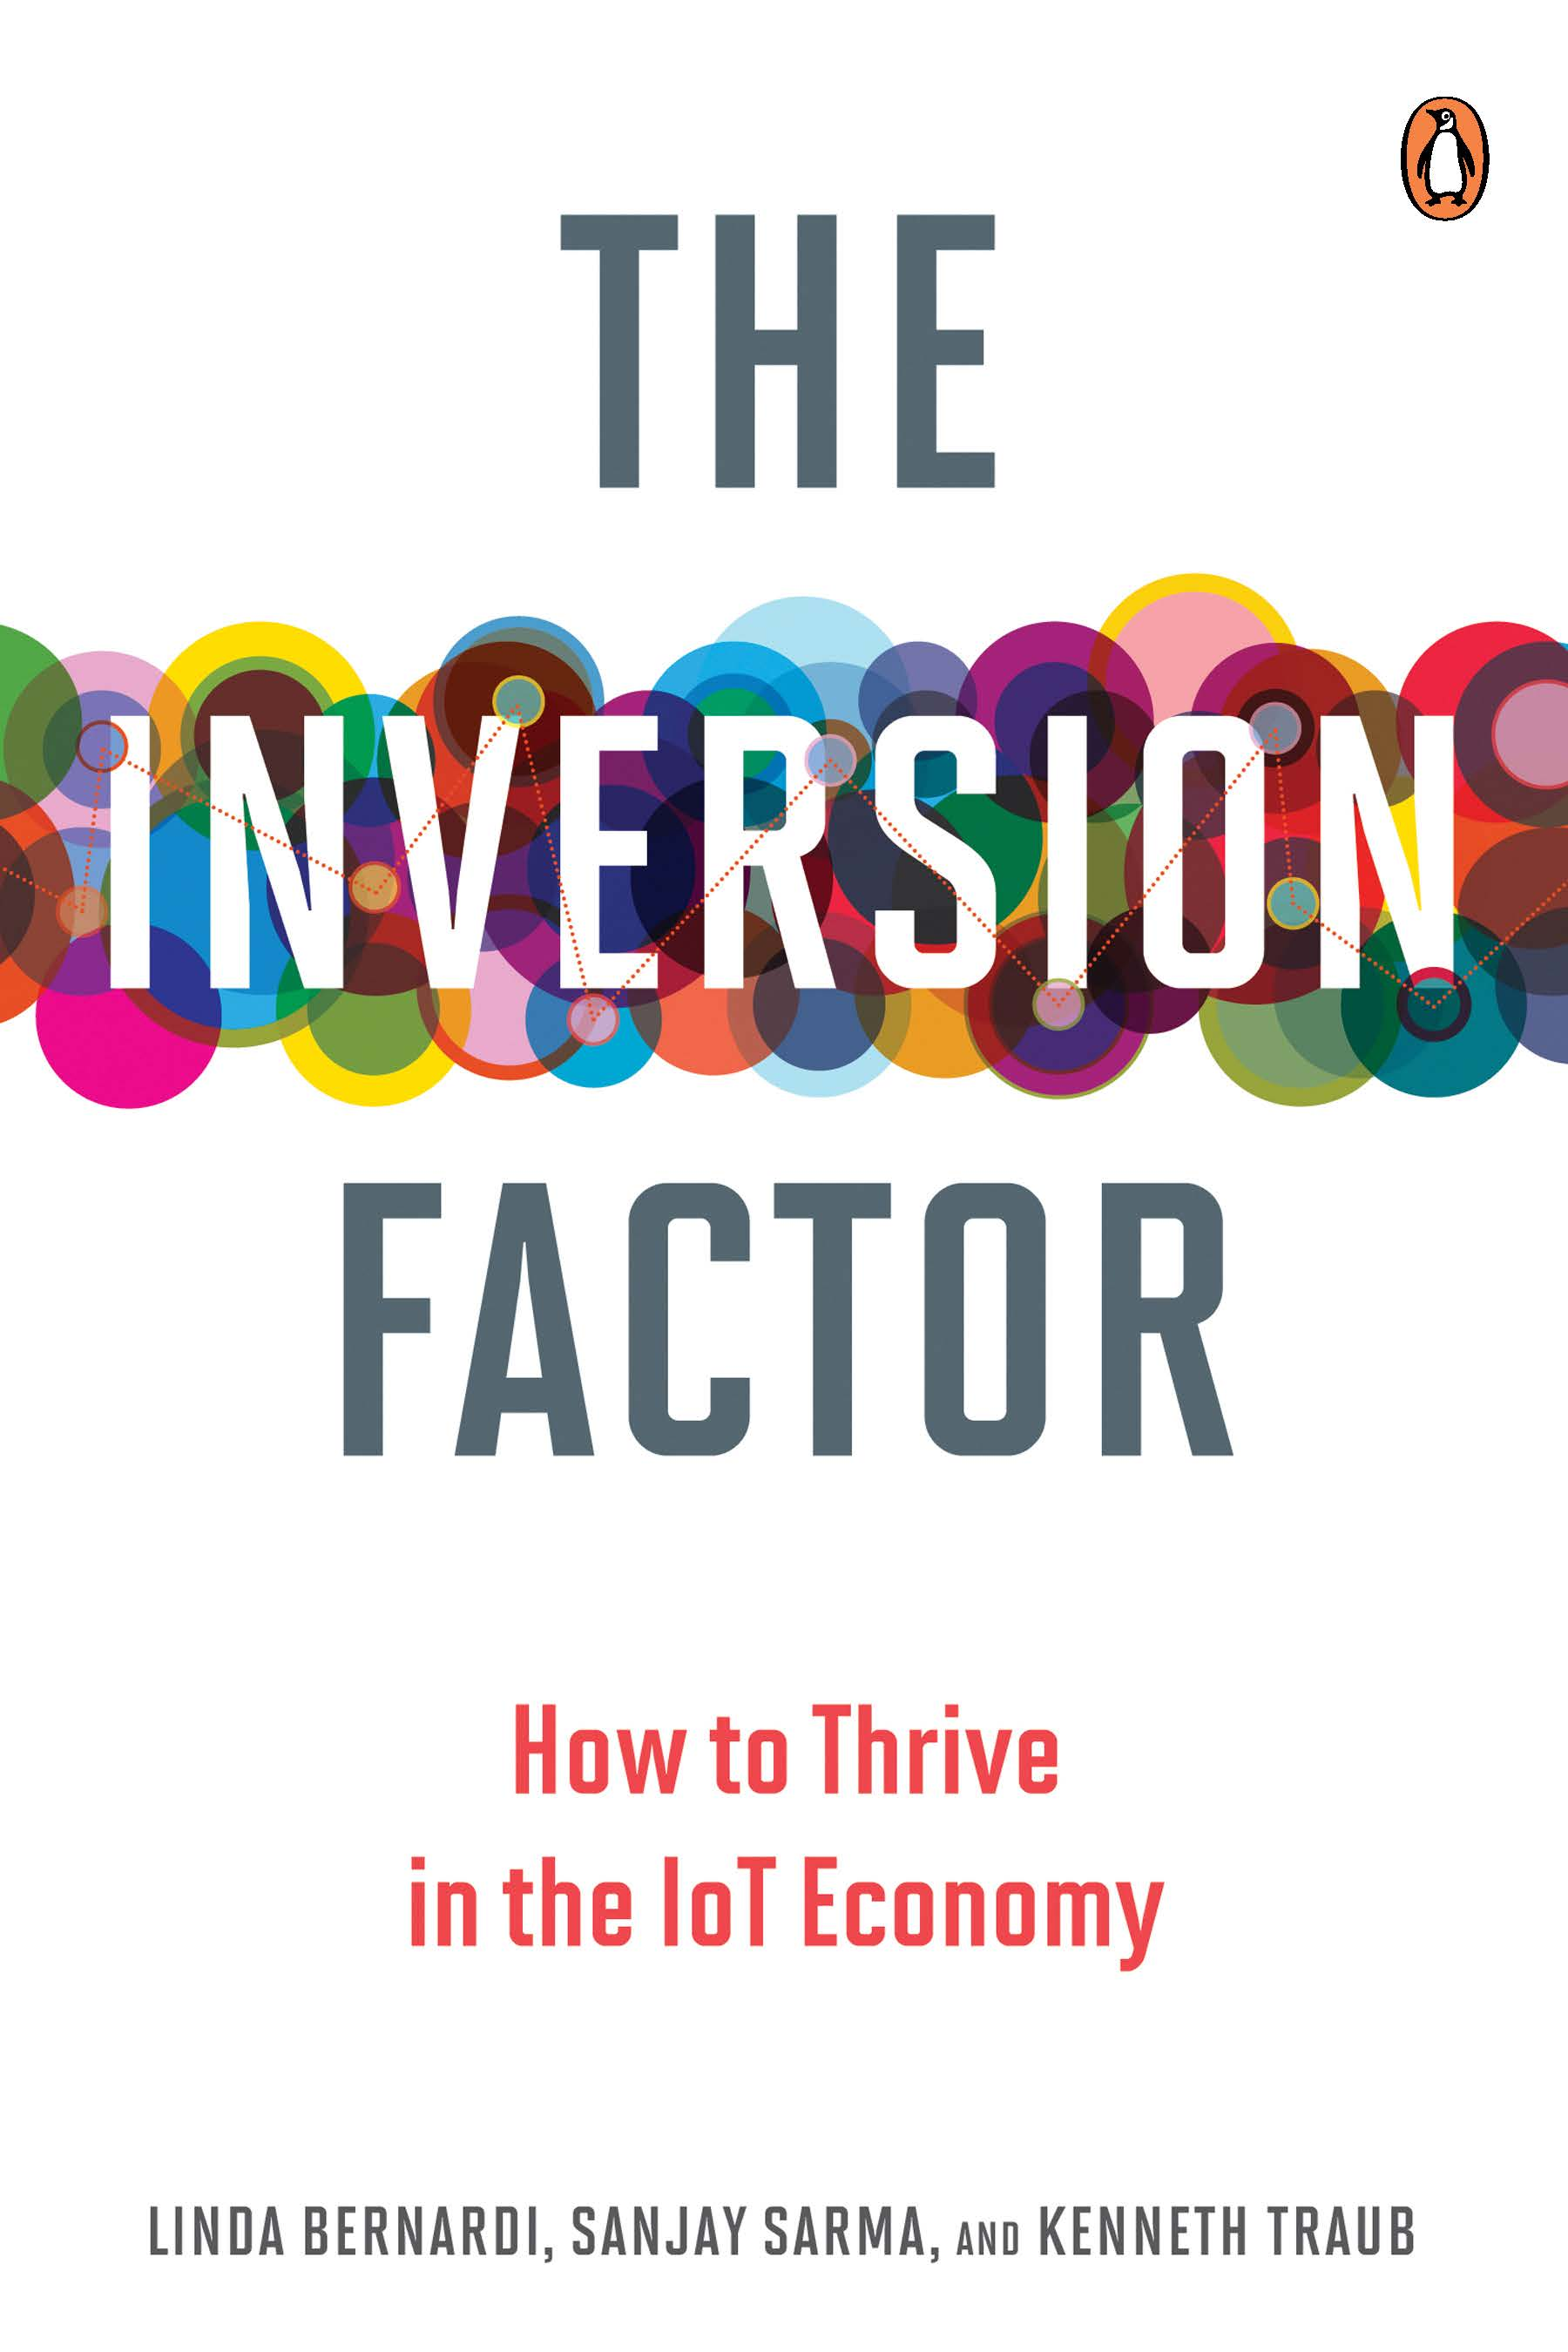 Inversion Factor: How to Thrive in the IoT Economy